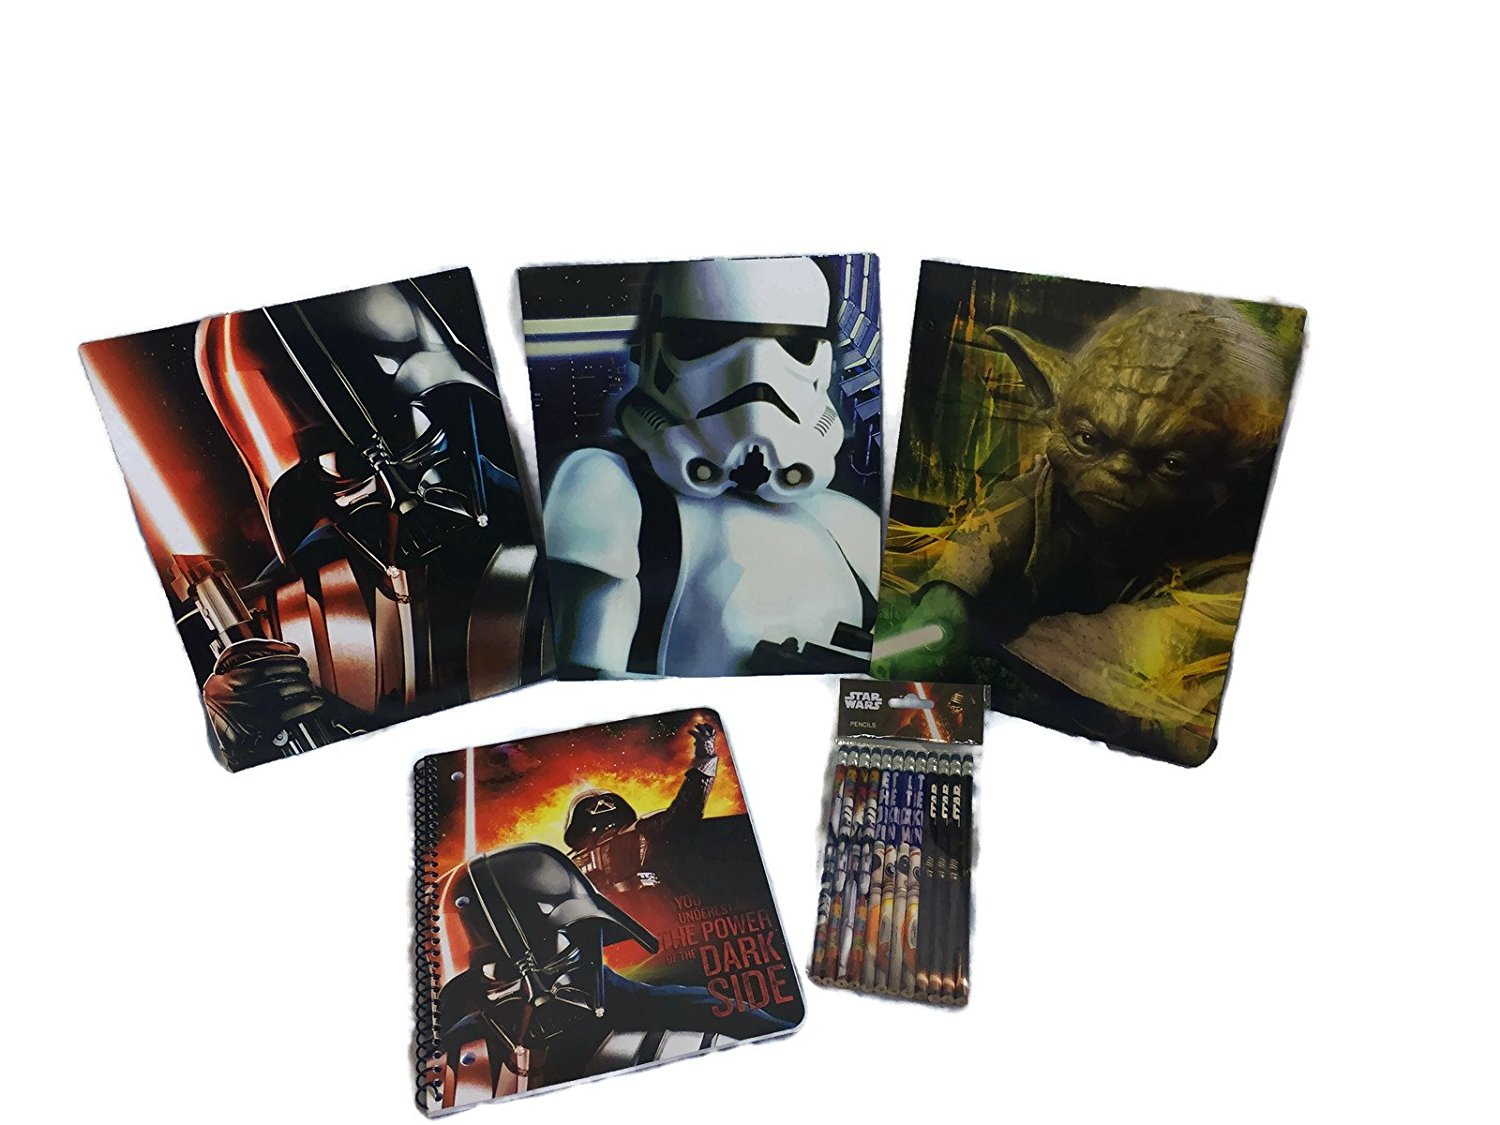 Star Wars School Supply Bundle: 5 Items- Three Star Wars Themed Subject Folders, One Pack of Star Wars Themed Pencils, Plus One Star Wars Themed Composition Notebook